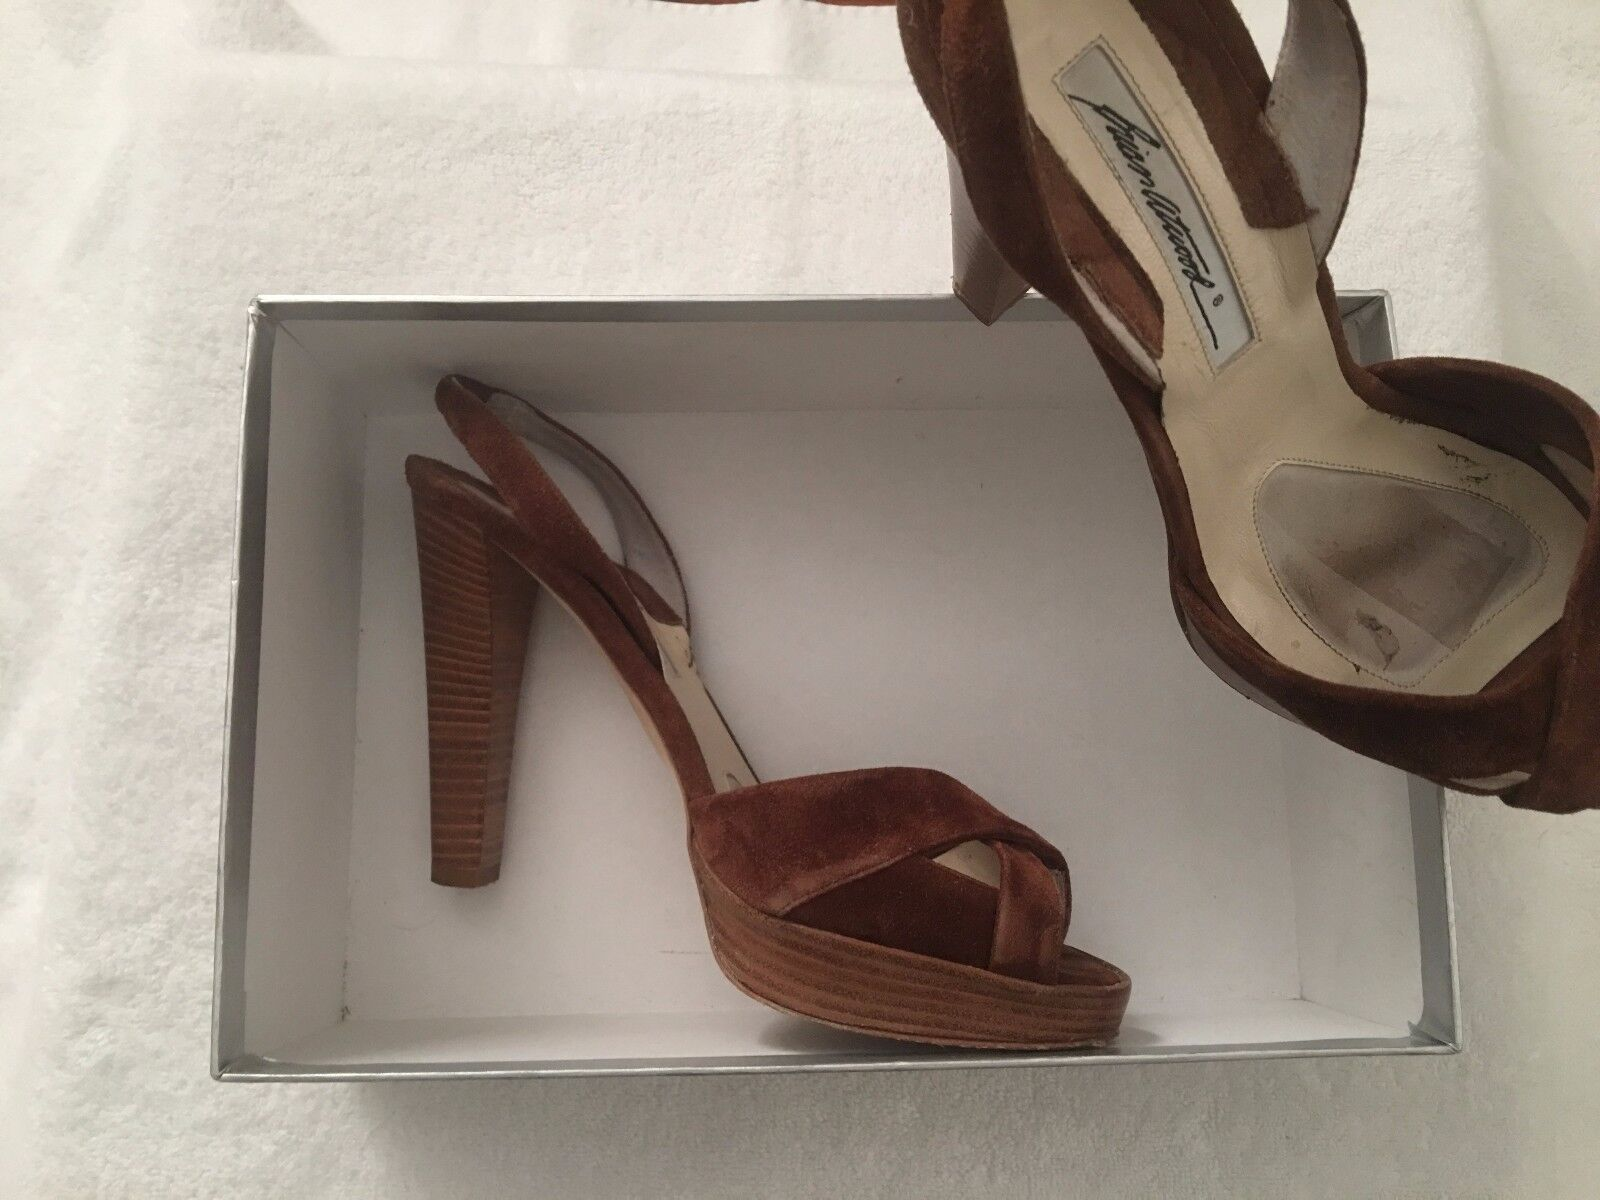 Brian Atwood Heels- Dolly Sandal Calf Suede Heels, size 39 - worn 2 times